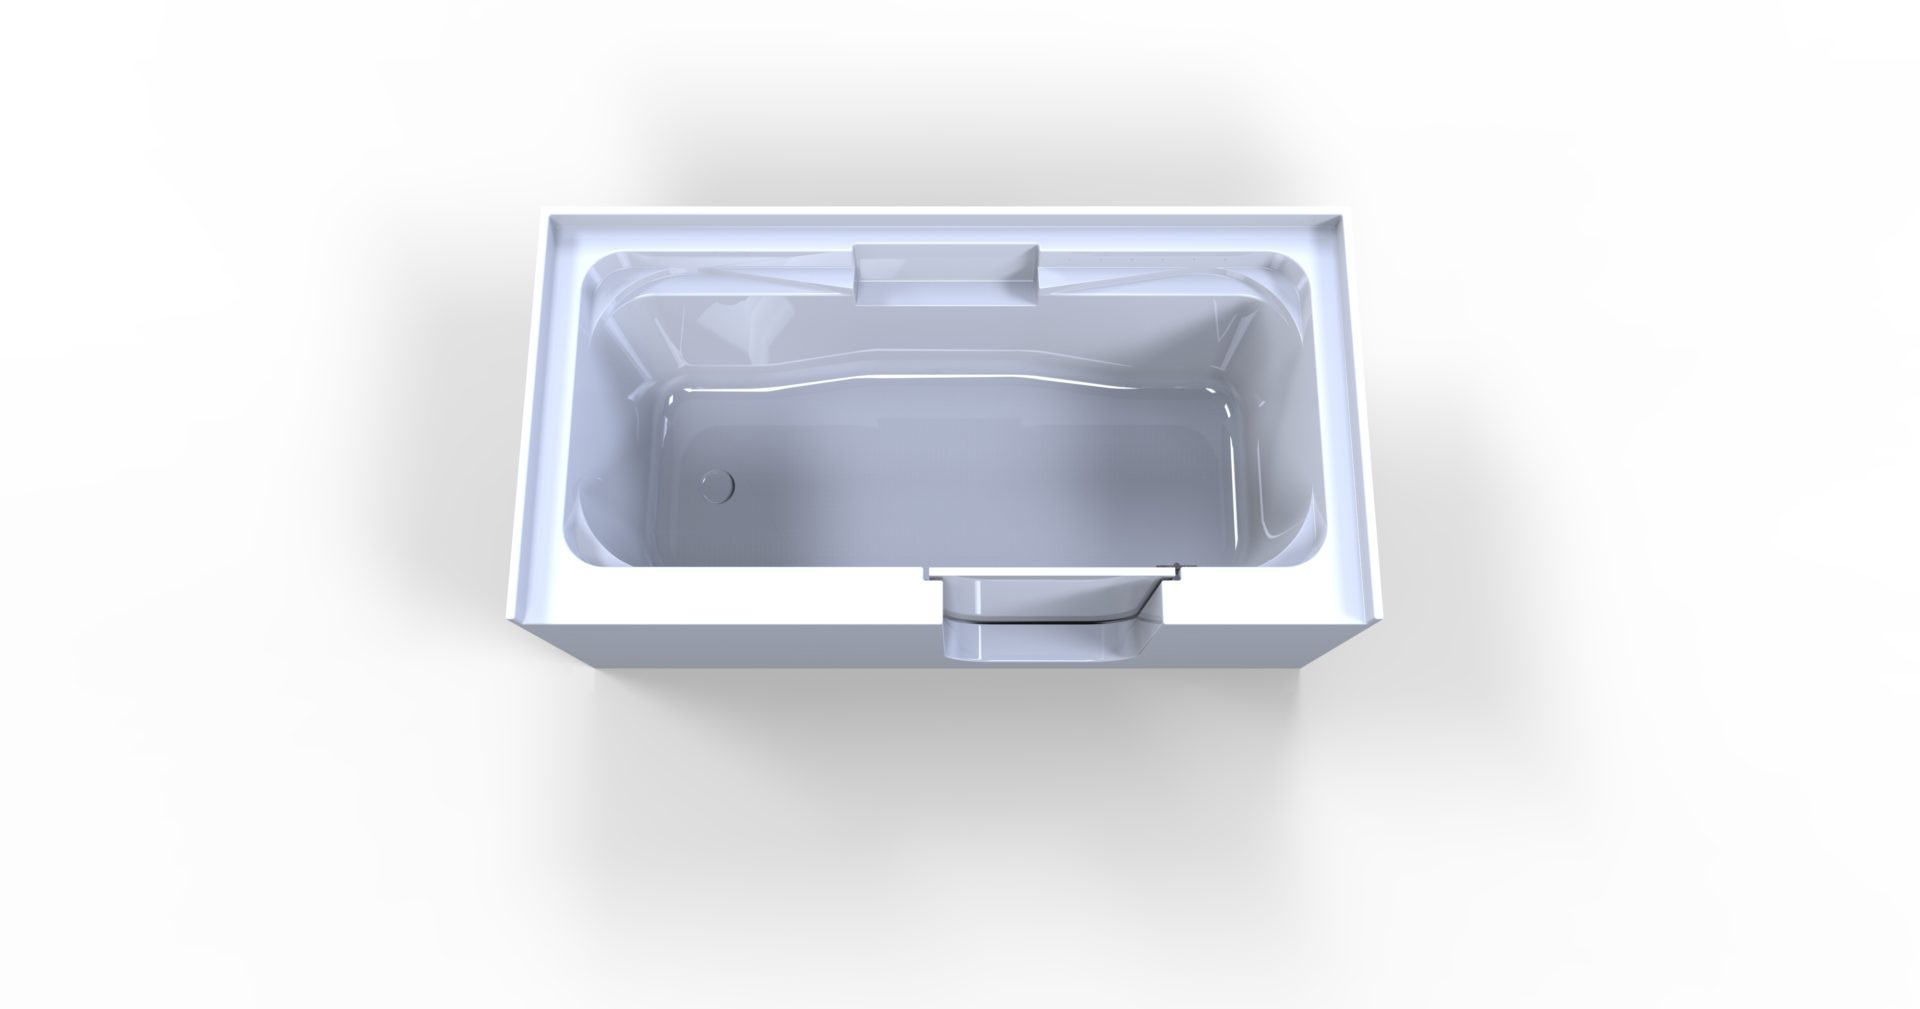 3d model of So-Lo style walk-in bathtub, no water, door closed, from above